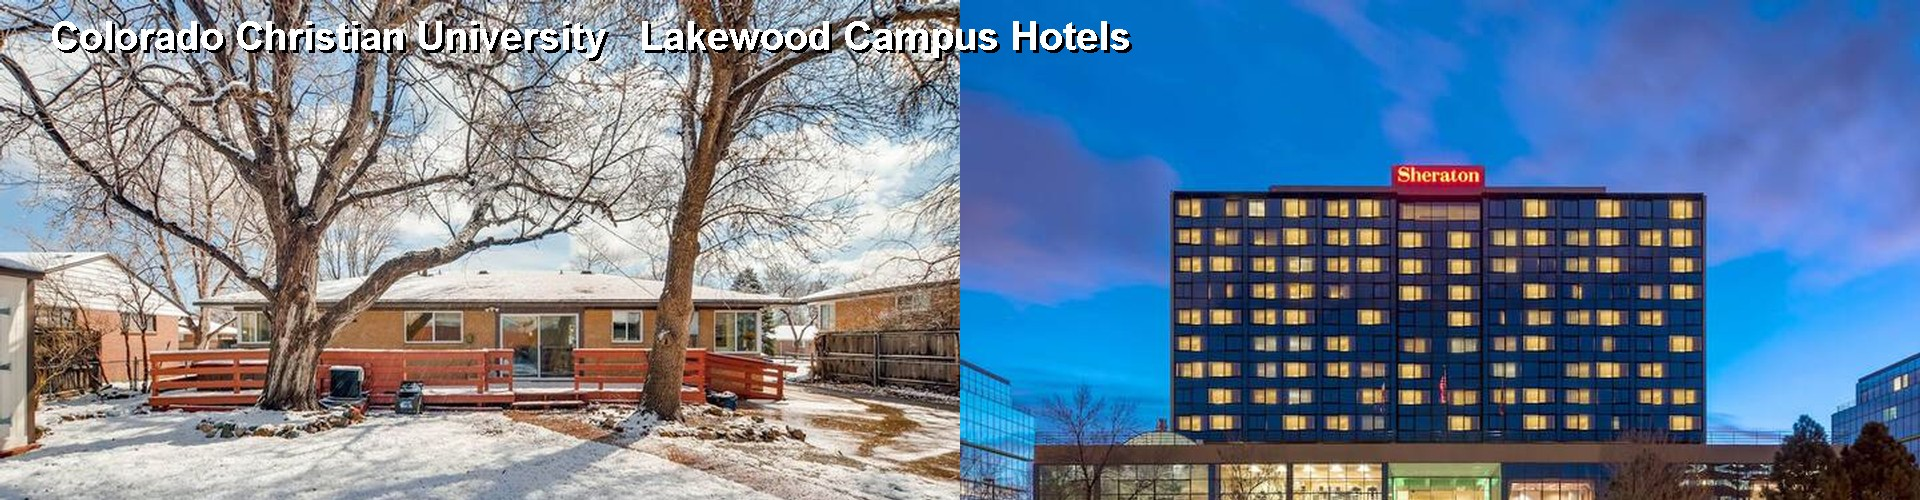 5 Best Hotels near Colorado Christian University Lakewood Campus